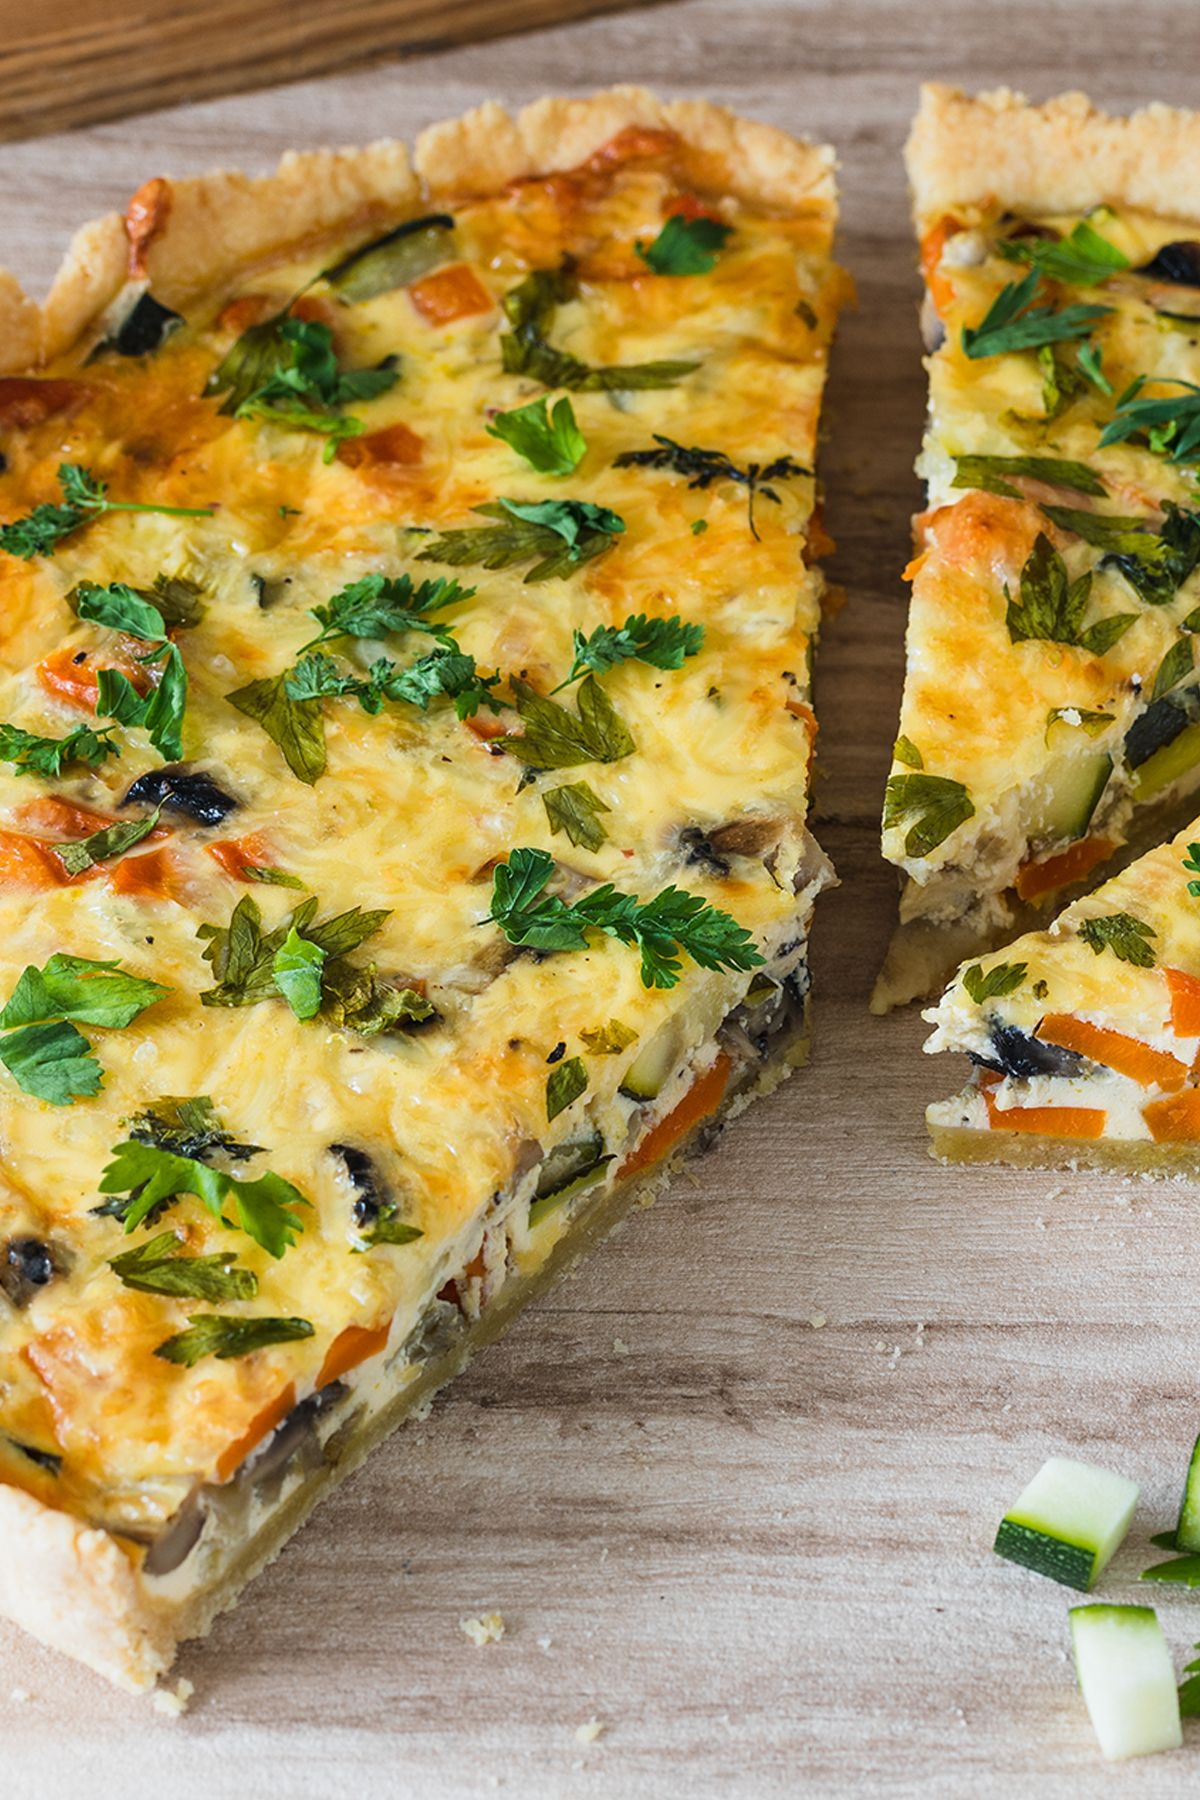 Photo of Vegetable vegetable quiche